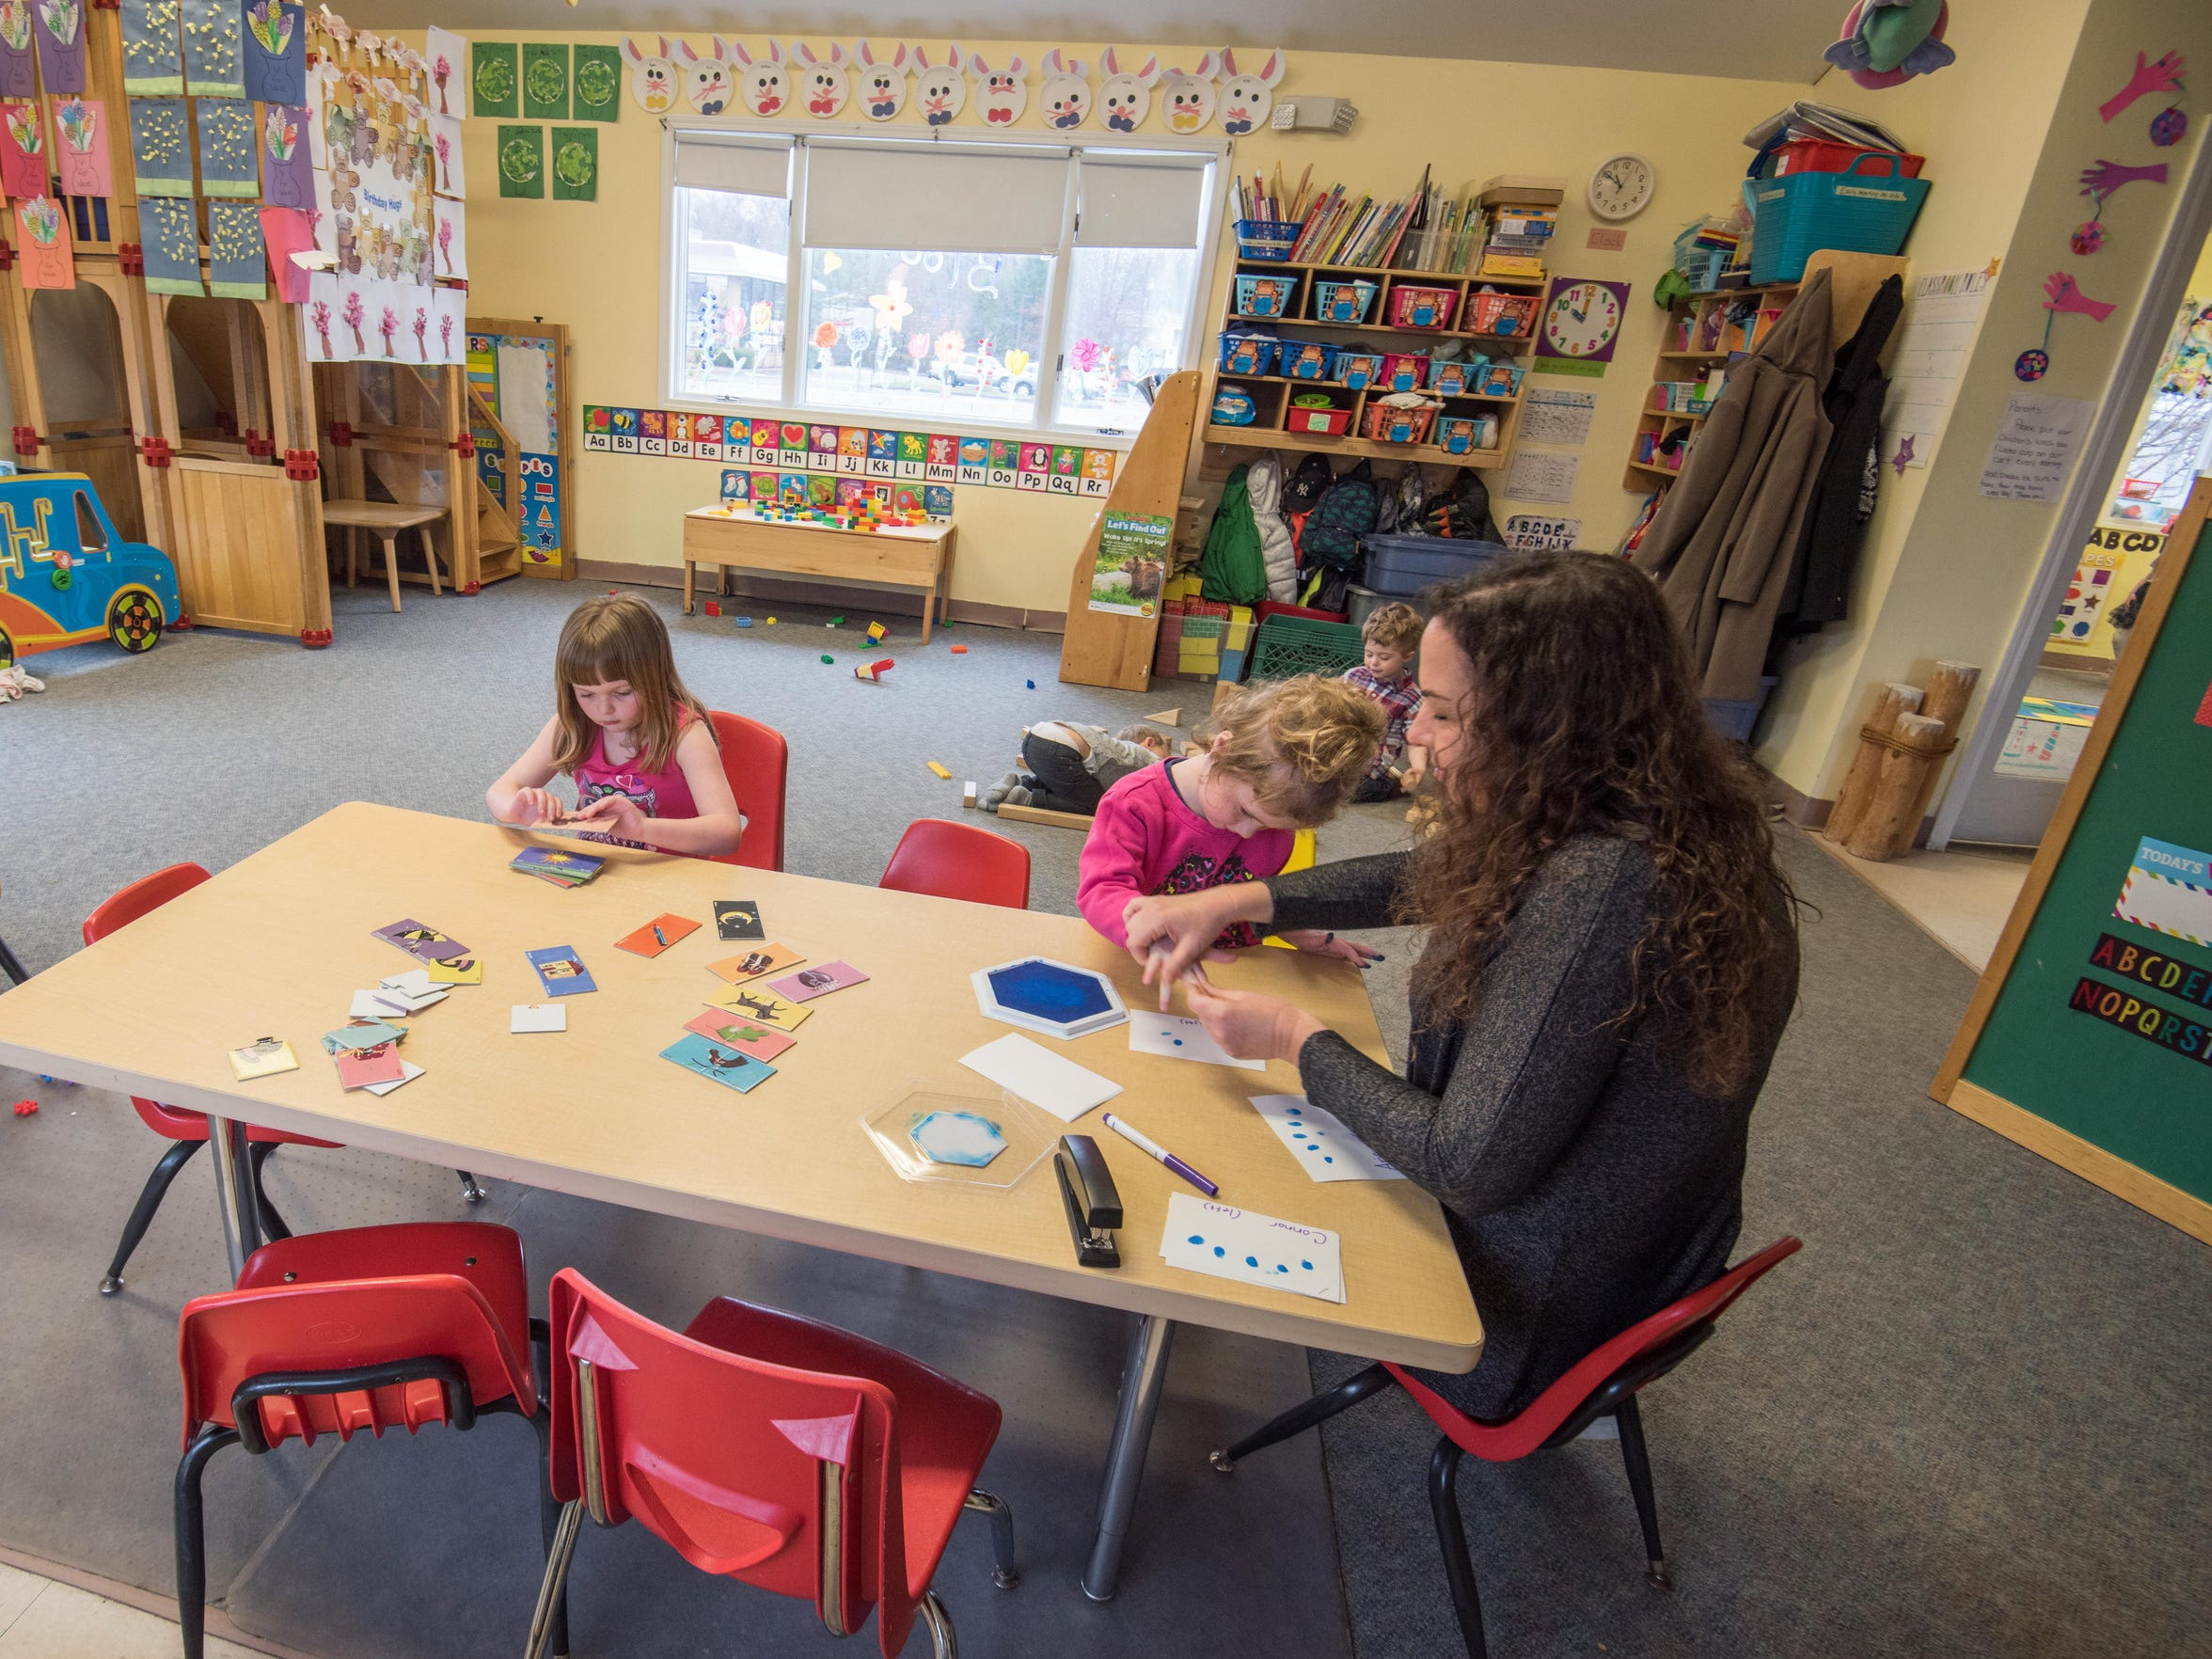 4/16/18-  Pre-K teacher Sarah Russo works with students on an art project at AB Seas Pre-School and Daycare, Middletown. Photo/James J. Connolly/Correspondent